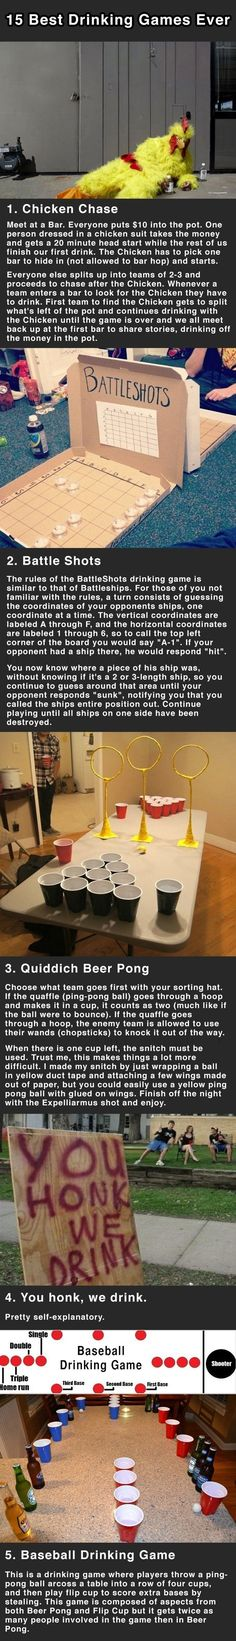 If I were still in college....15 Drinking Games